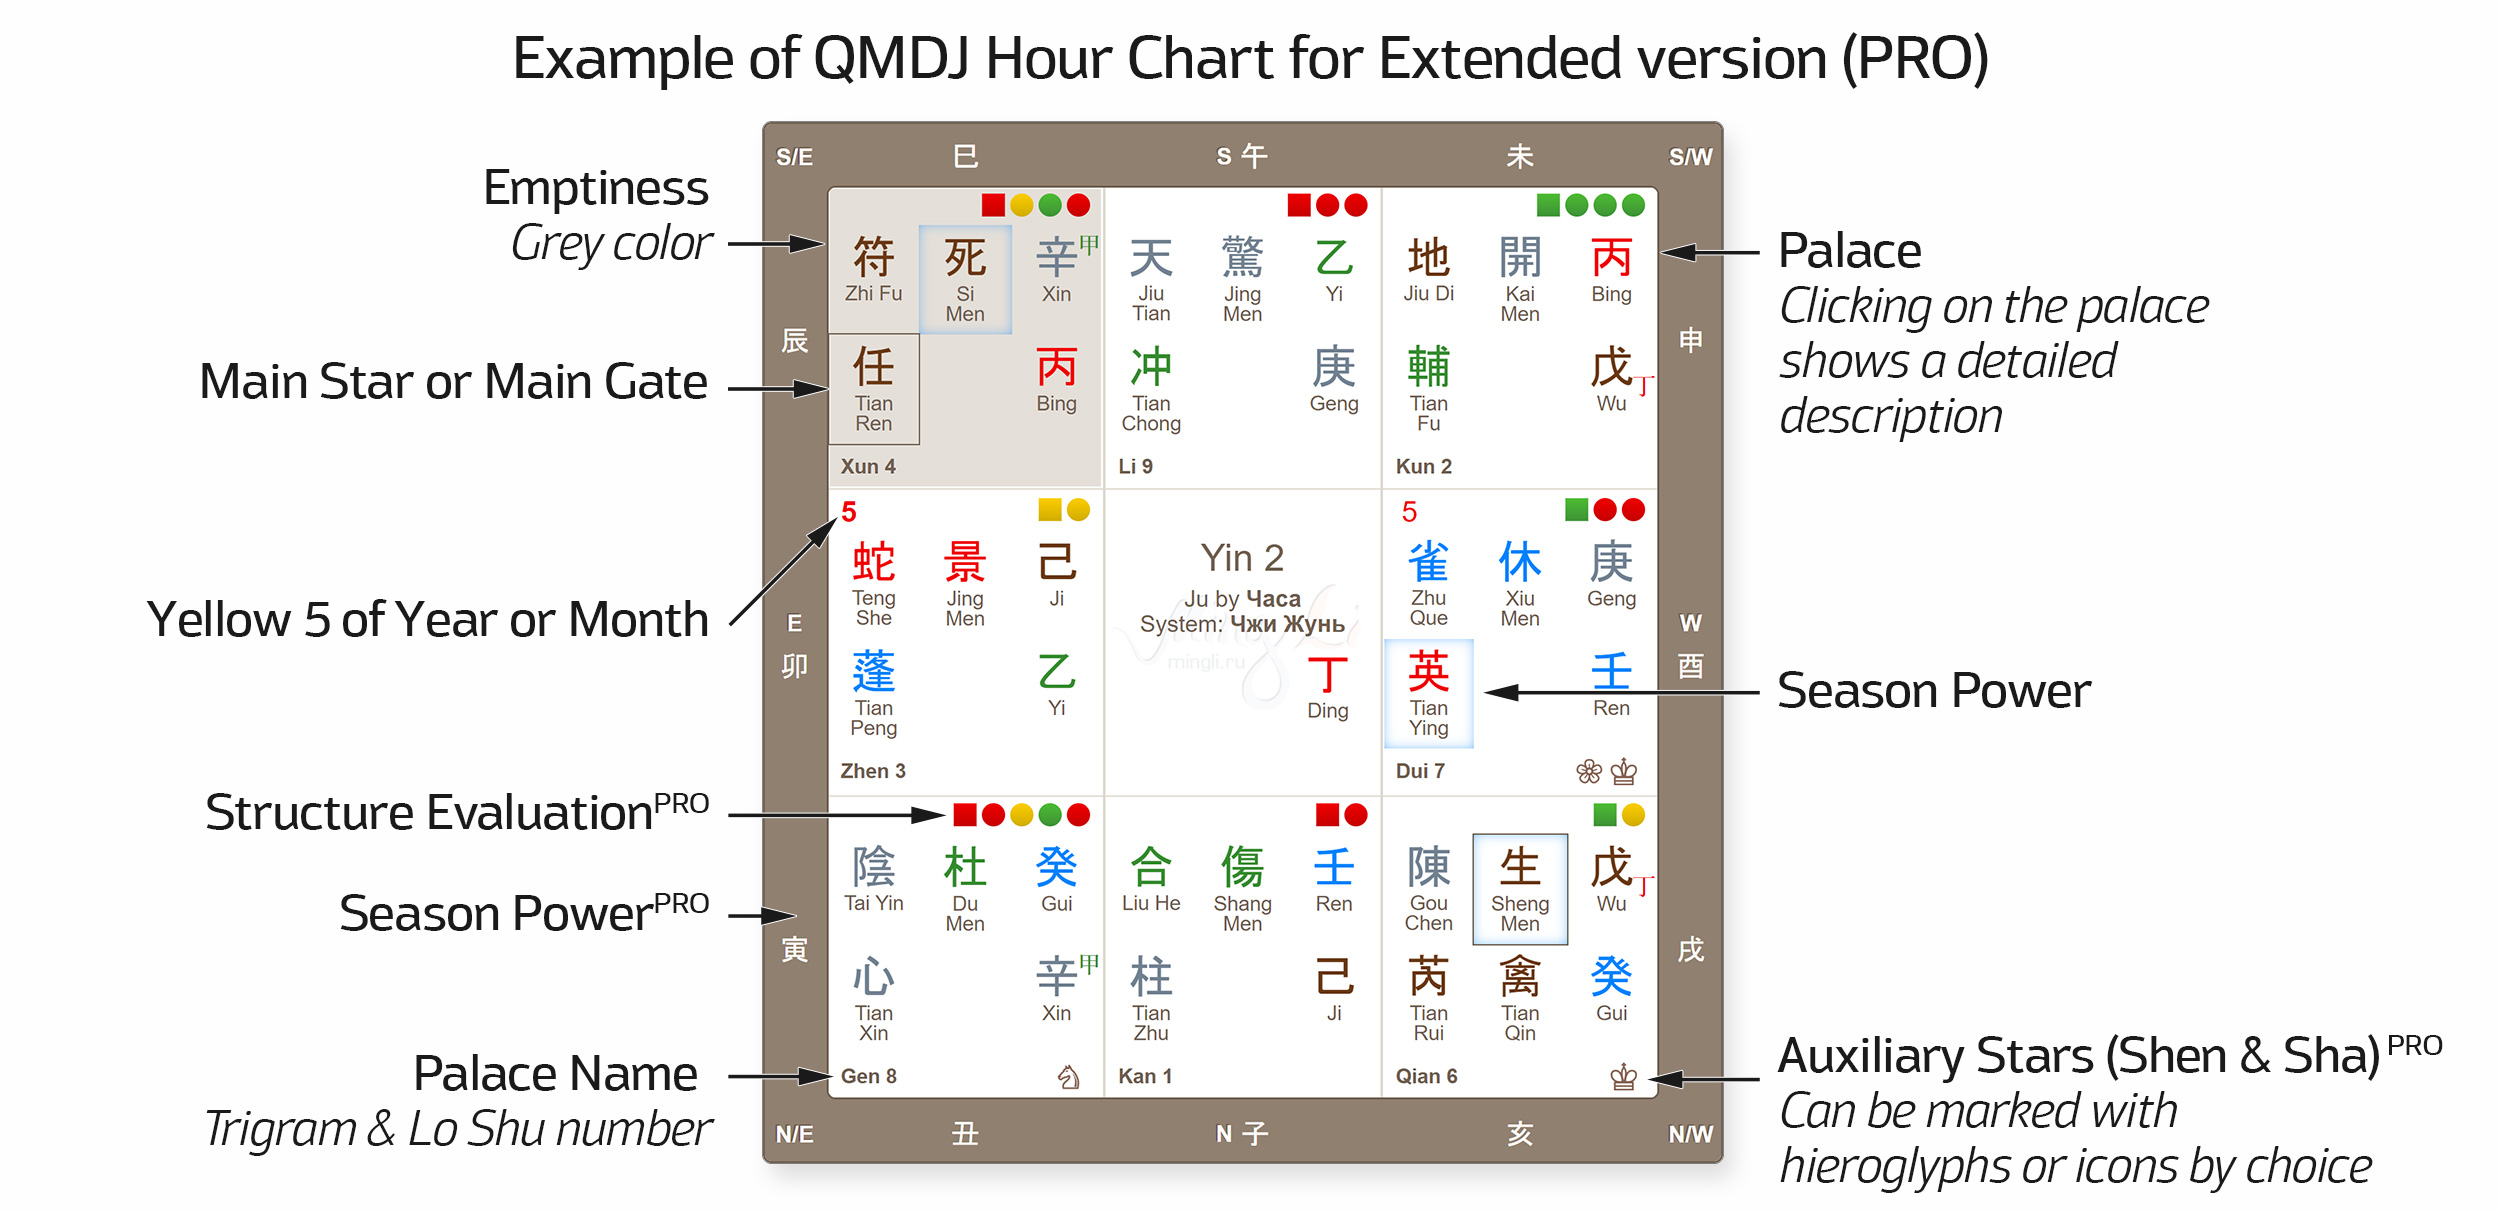 Example of QMDJ Hour Chart for Extended version (PRO)